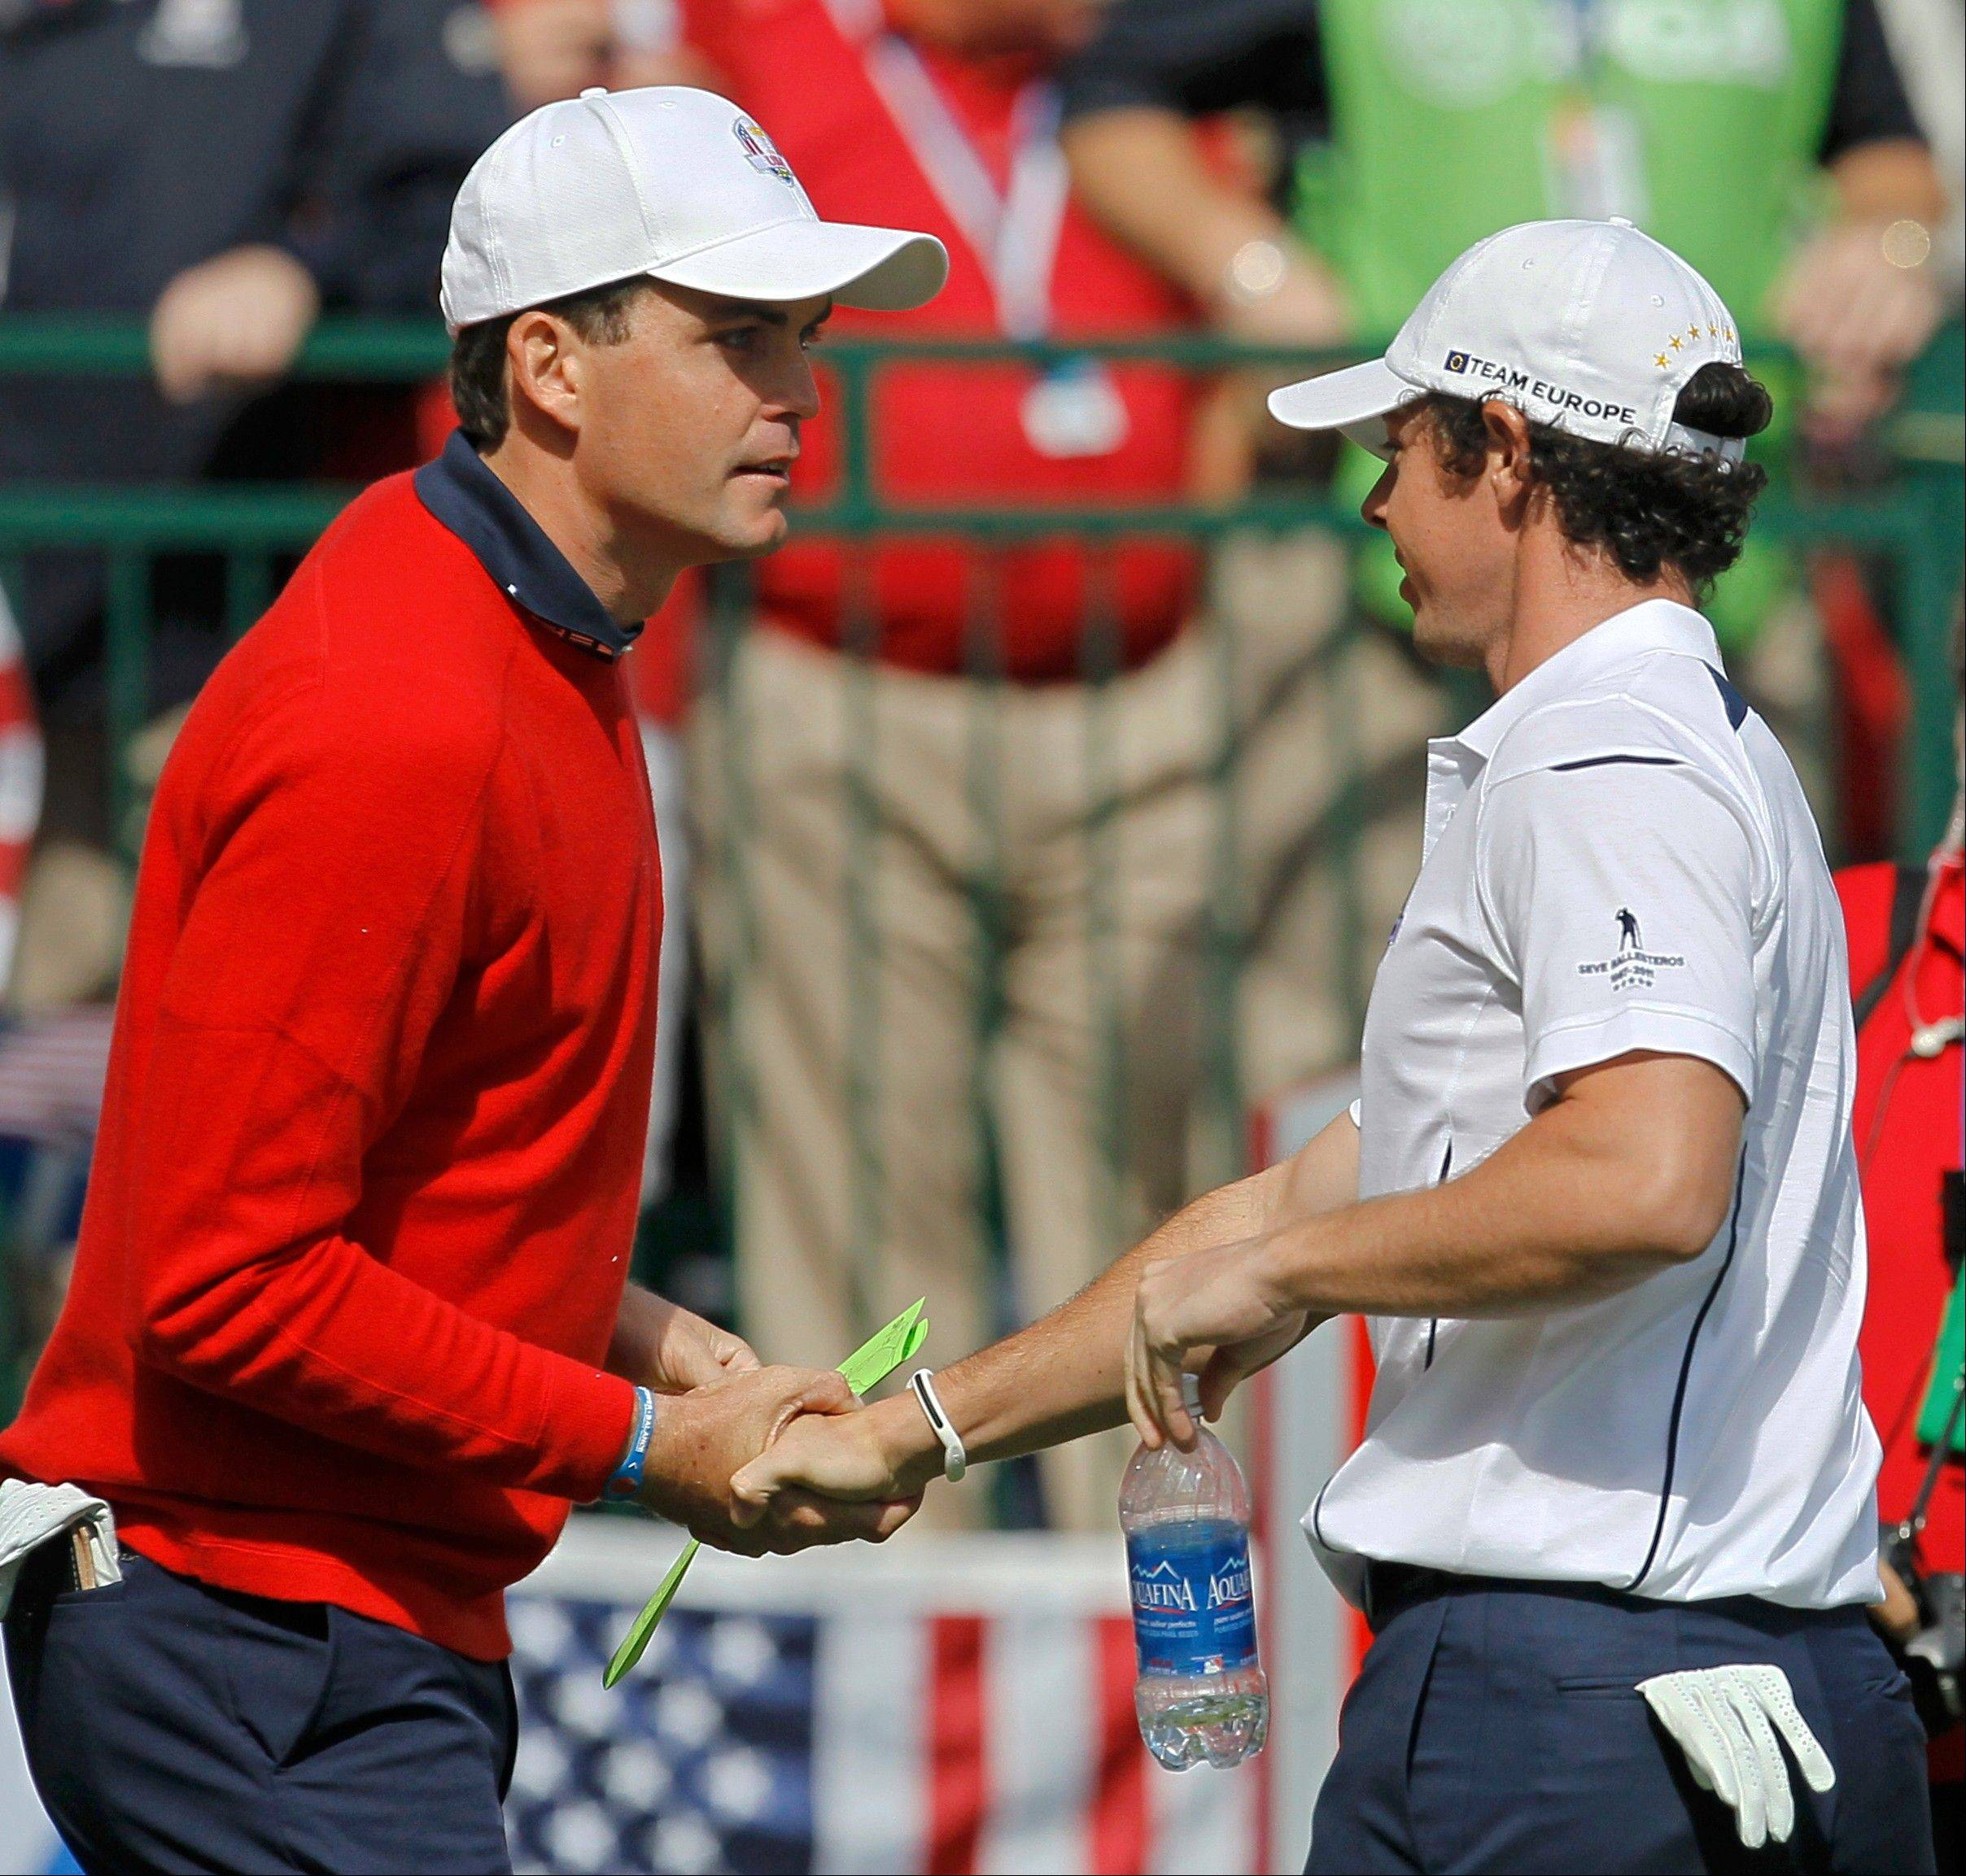 Europe's Rory McIlroy, right, shakes hands with USA's Keegan Bradley before a singles match at the Ryder Cup PGA golf tournament Sunday.